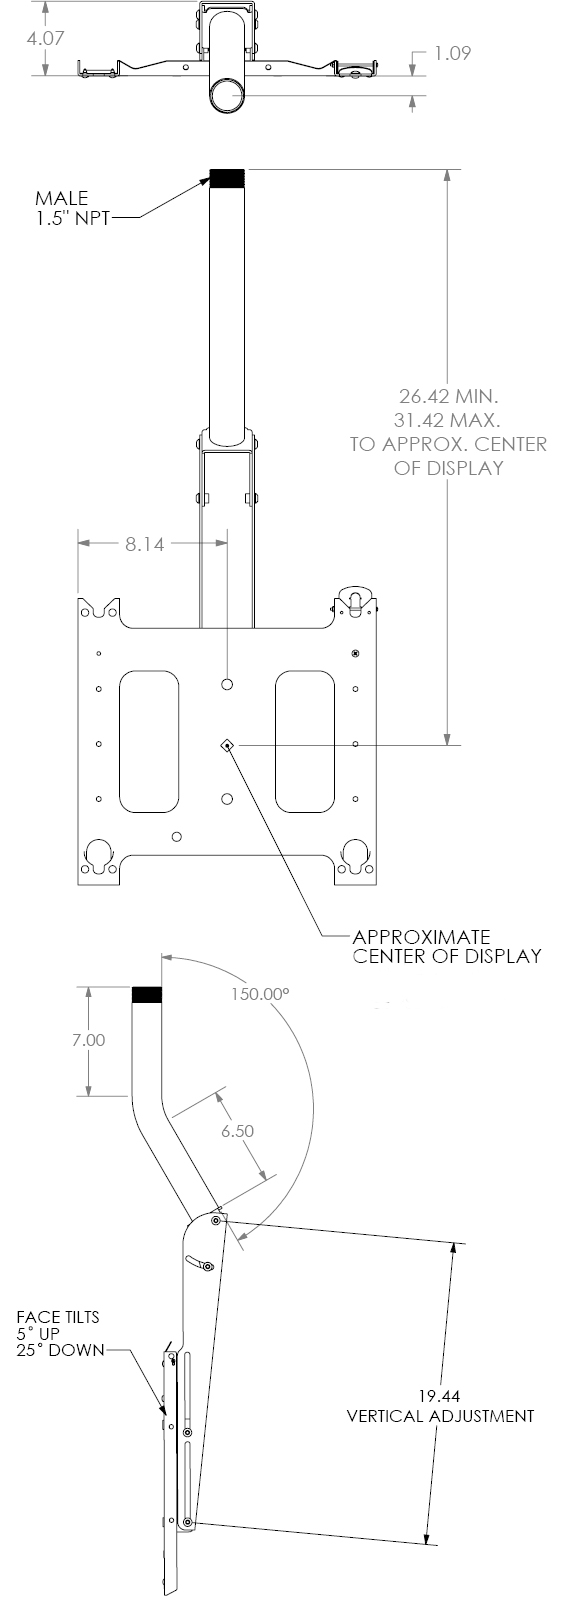 Technical Drawing for Chief PCMUS Ceiling Mount with Angled Column